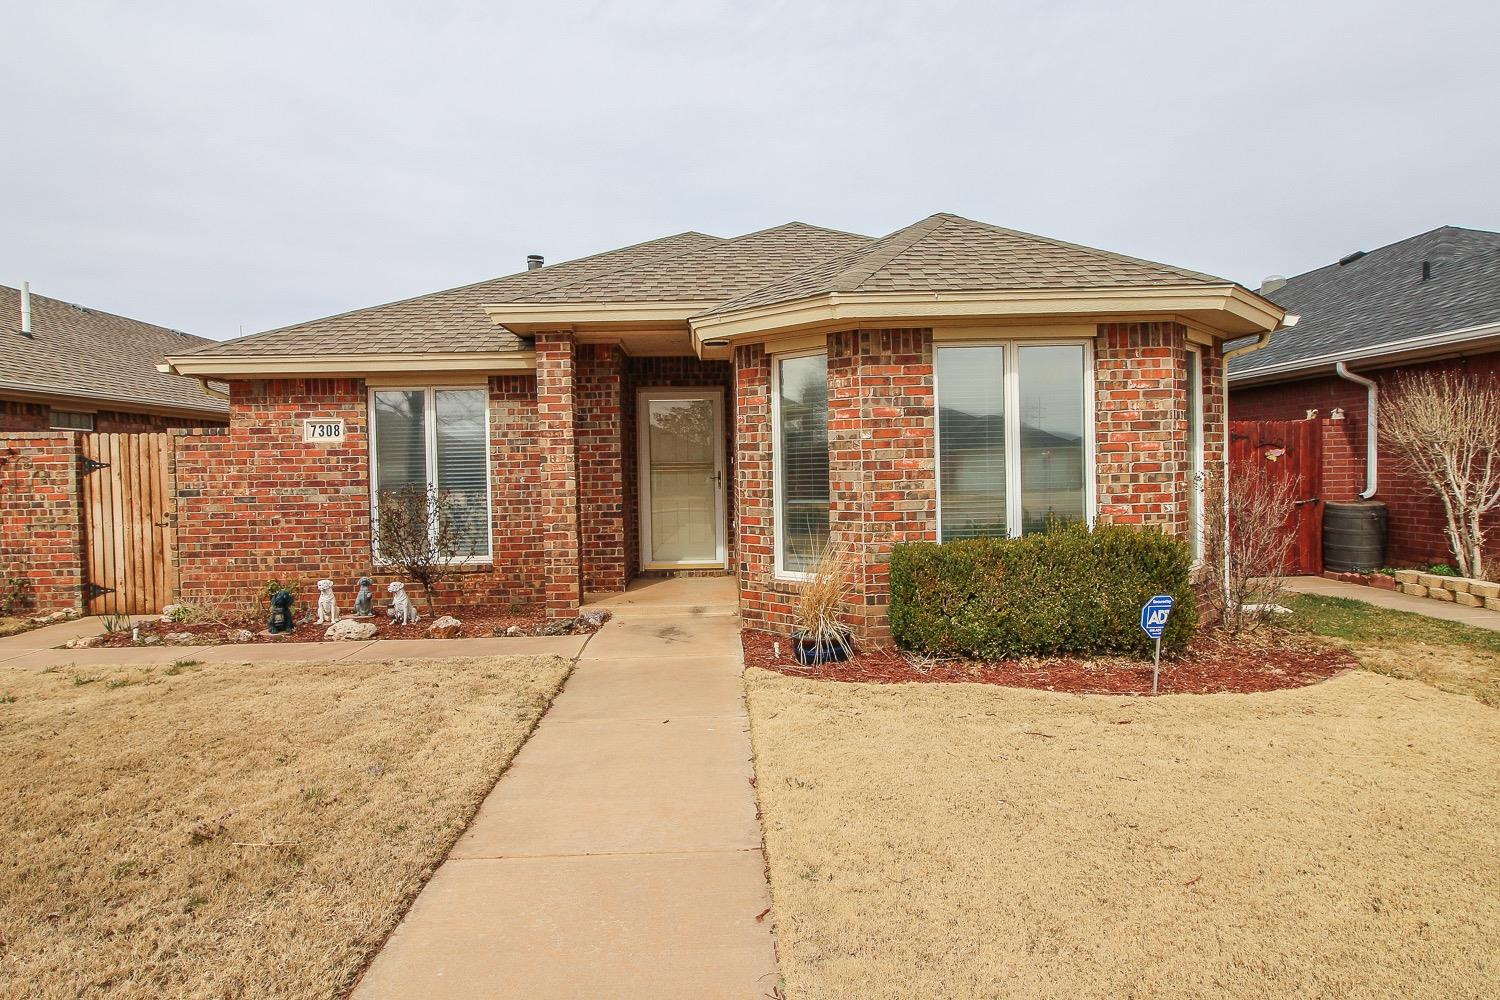 7308 60th Street, Lubbock in Lubbock County, TX 79407 Home for Sale